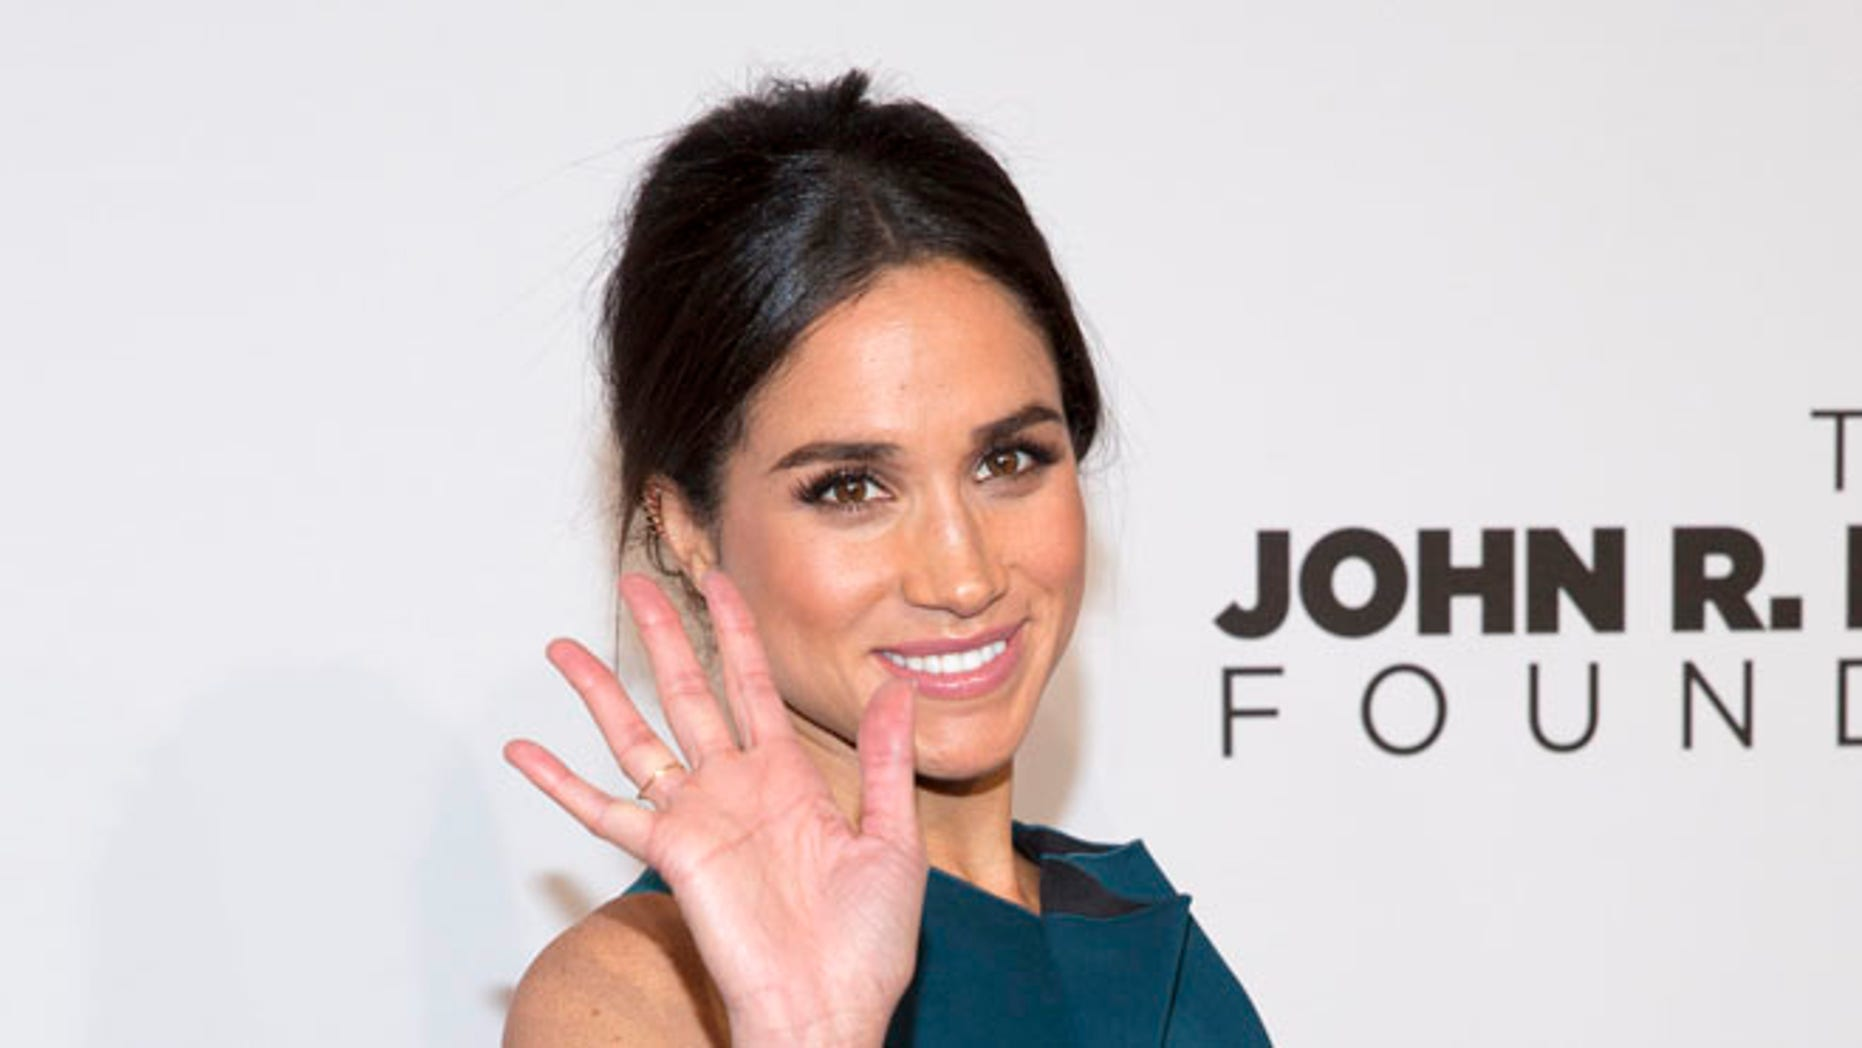 An alleged topless photo of Meghan Markle has been leaked.